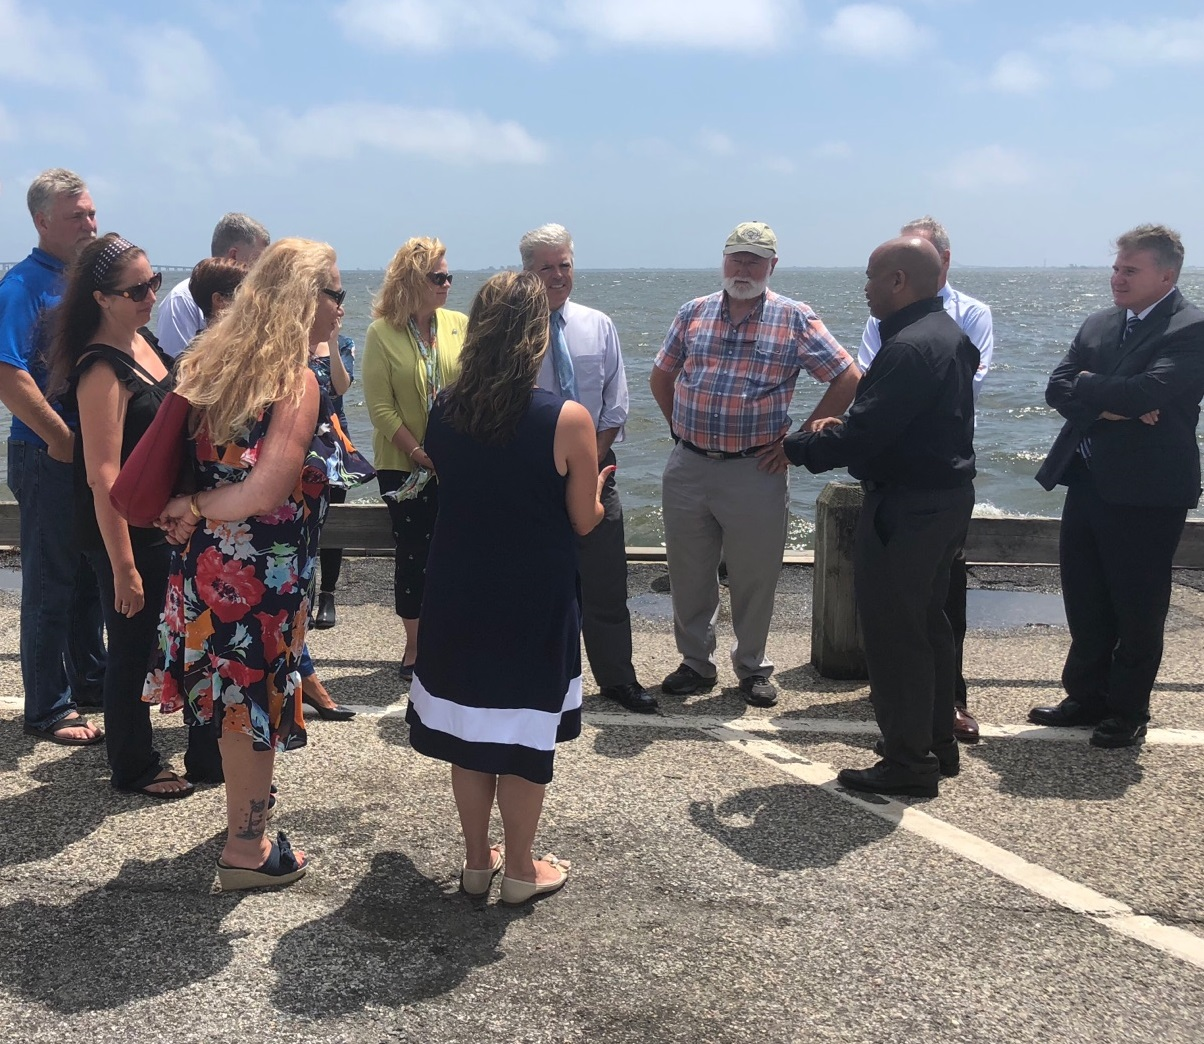 Pictured with Speaker Heastie in the second photo at the Babylon Village Main Docks (from left to right): marine scientists and members of local non-profits, Assemblymember Christine Pellegrino, Suffolk County Executive Steve Bellone and Dr. Malcolm Bowma